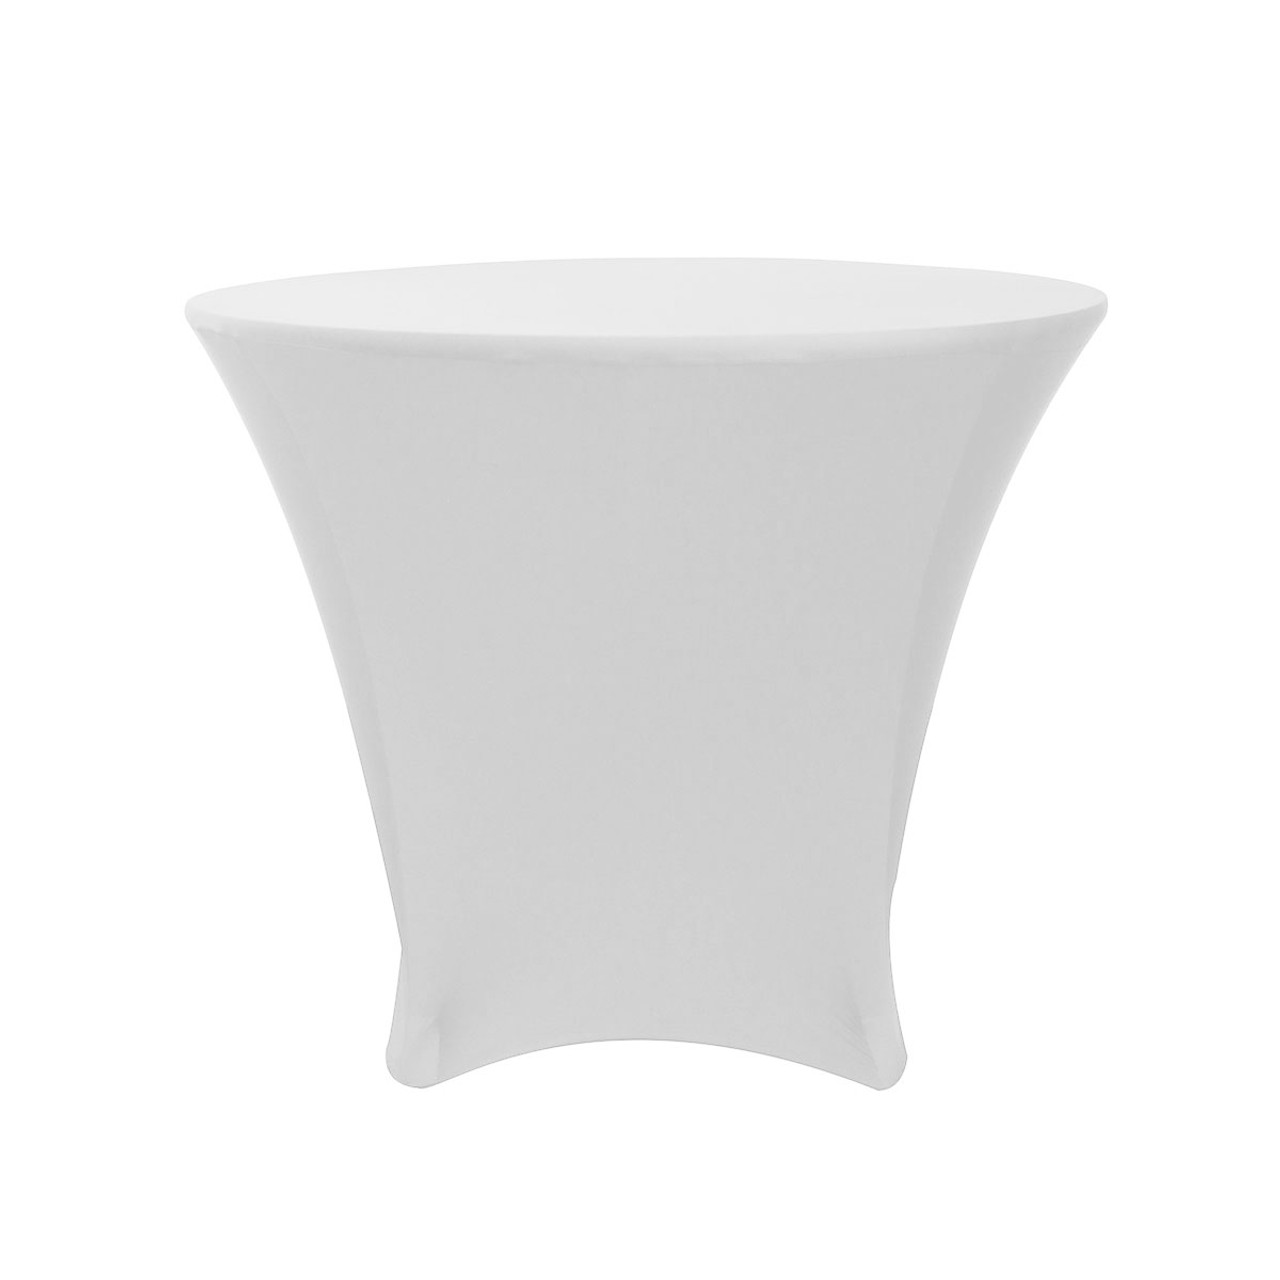 36 X 30 Inch Lowboy Cocktail Round Stretch Spandex Table Covers White ...